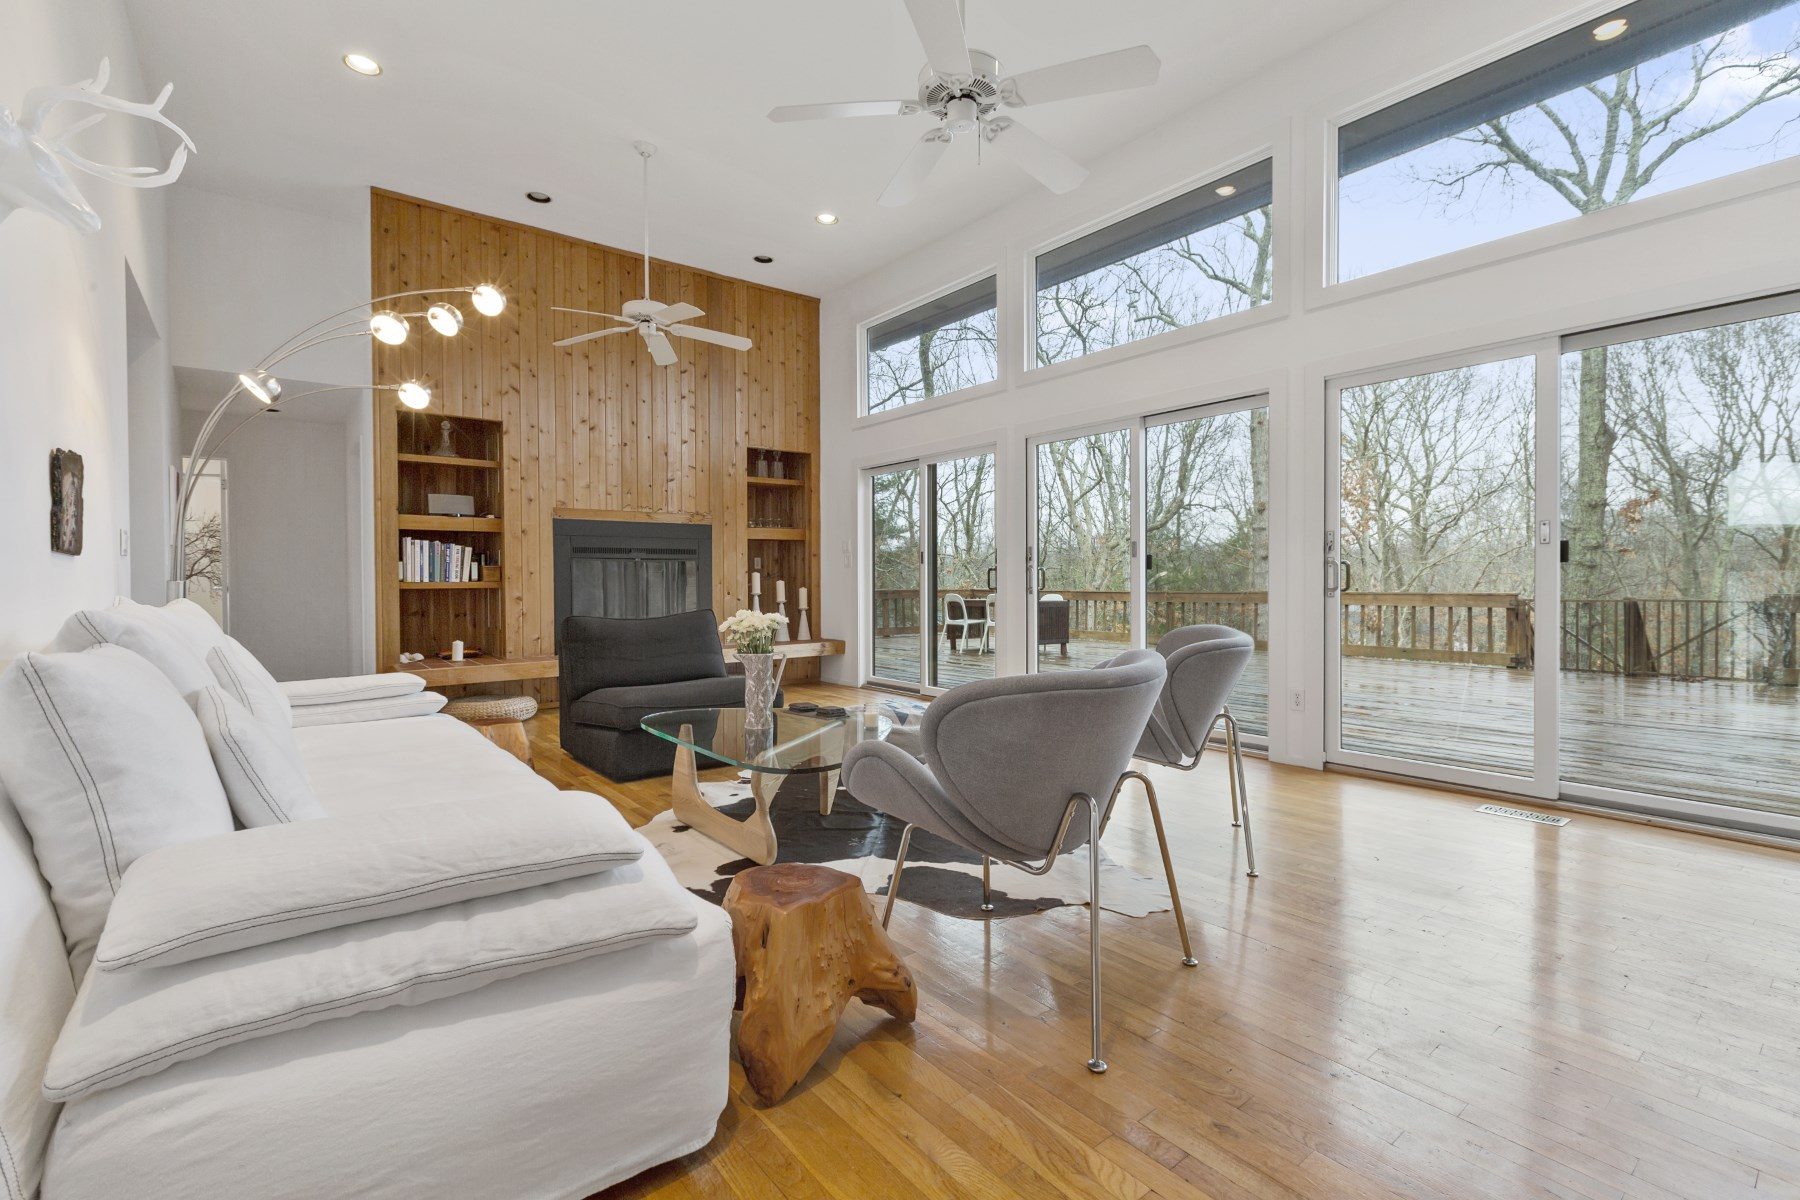 Additional photo for property listing at STYLISH HOUSE AVAILABLE FOR AUGUST RENTA 4 Hollow Tree Lane East Hampton, New York 11937 United States